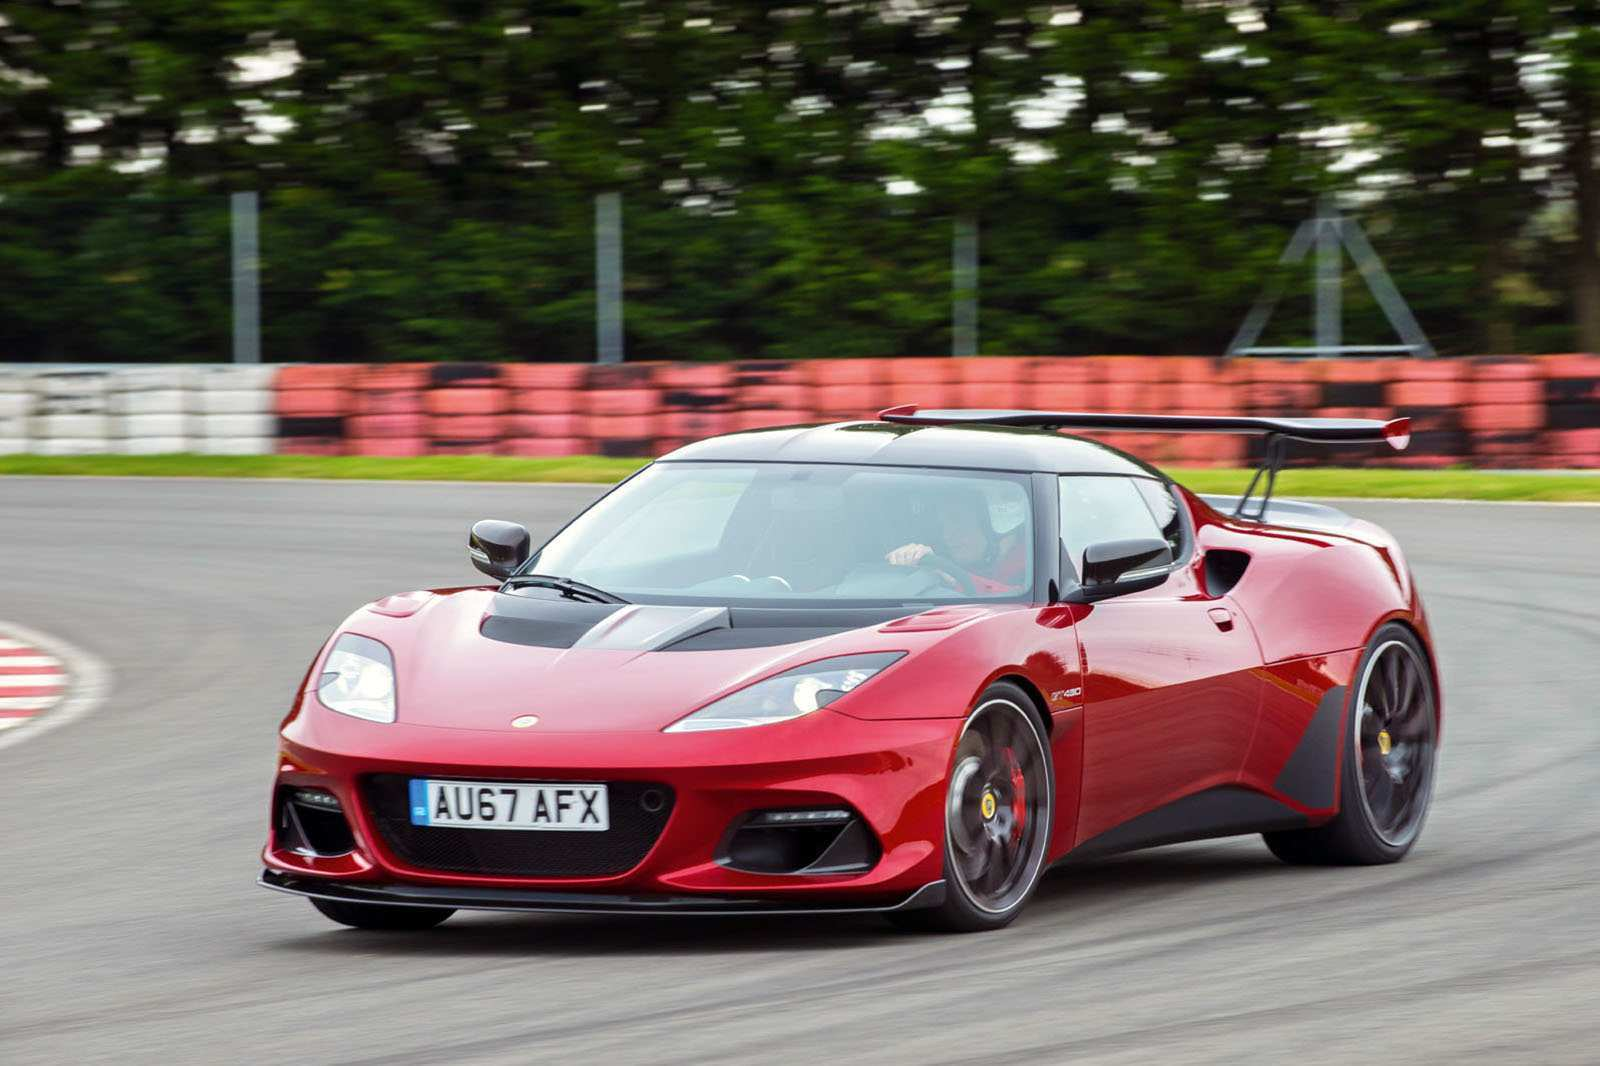 86 The 2020 Lotus Evora Images